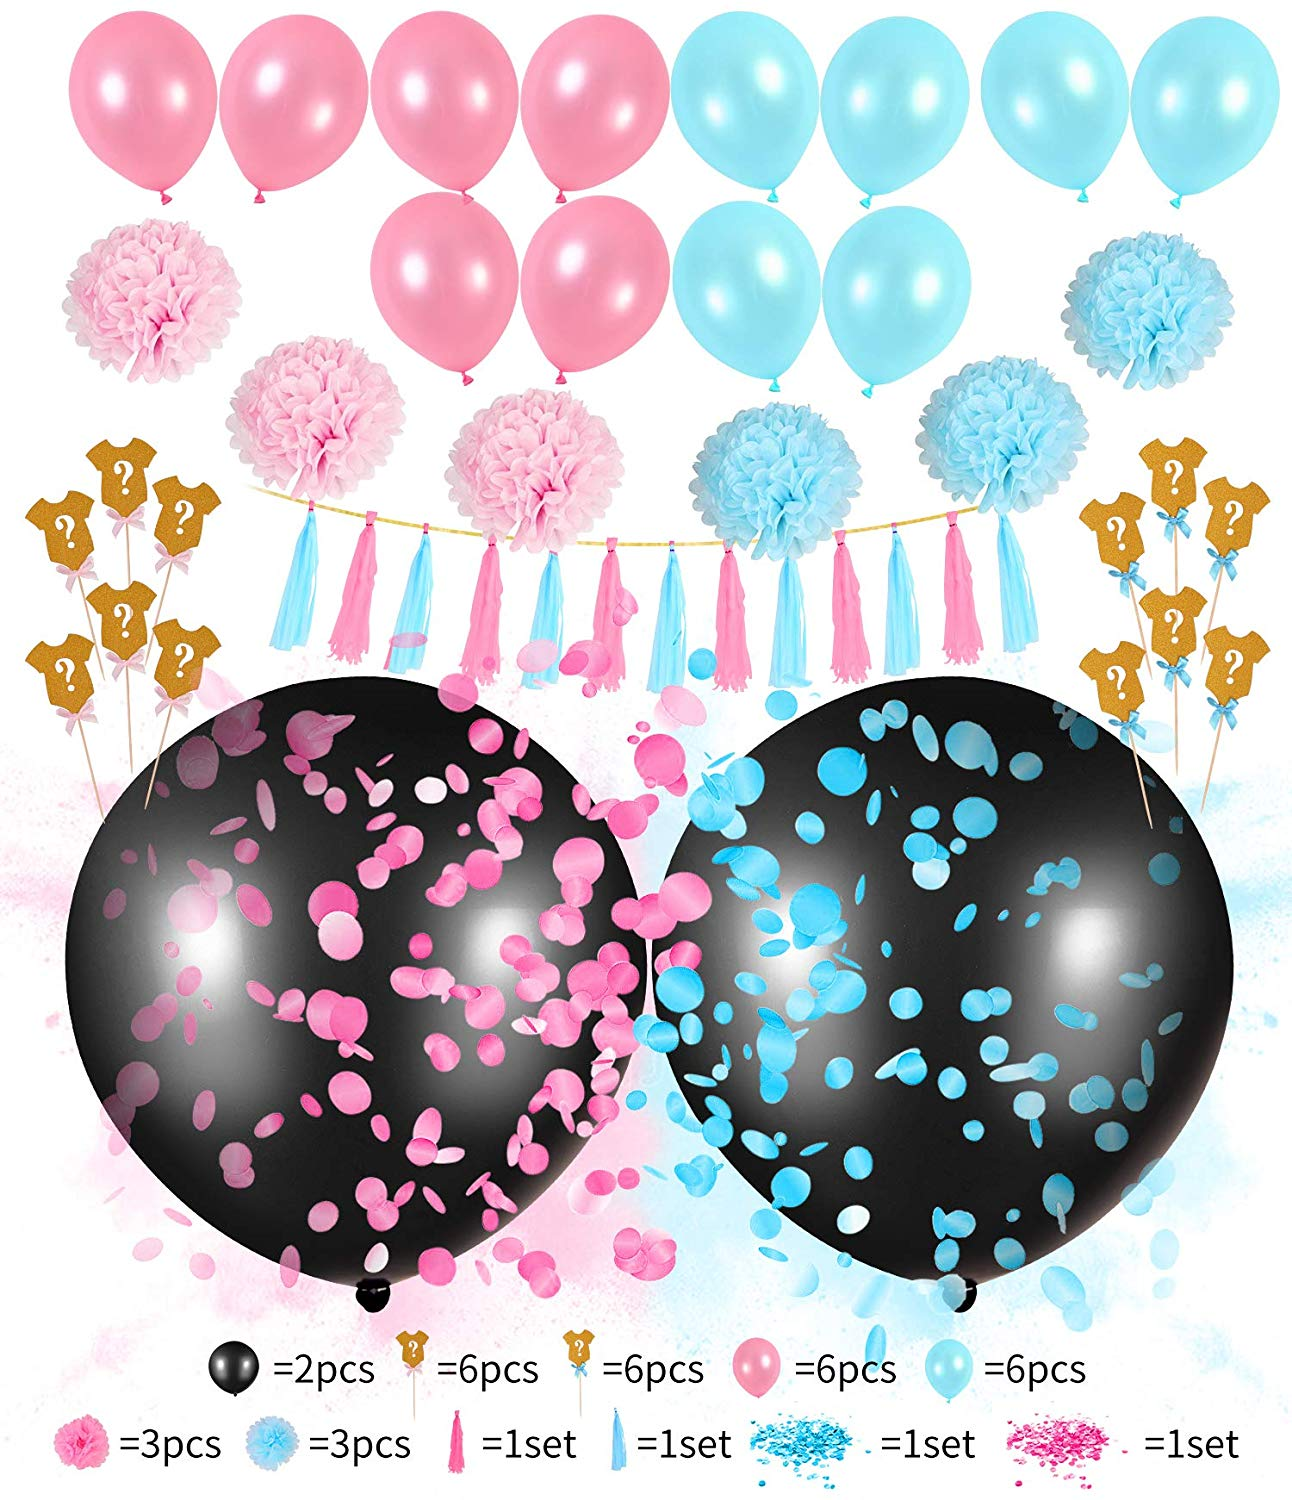 2 Pcs 36'' Black Balloons Gender Reveal Decorations Sets For Baby Shower -Come With Pink And Blue Confetti (Gender Reveal)